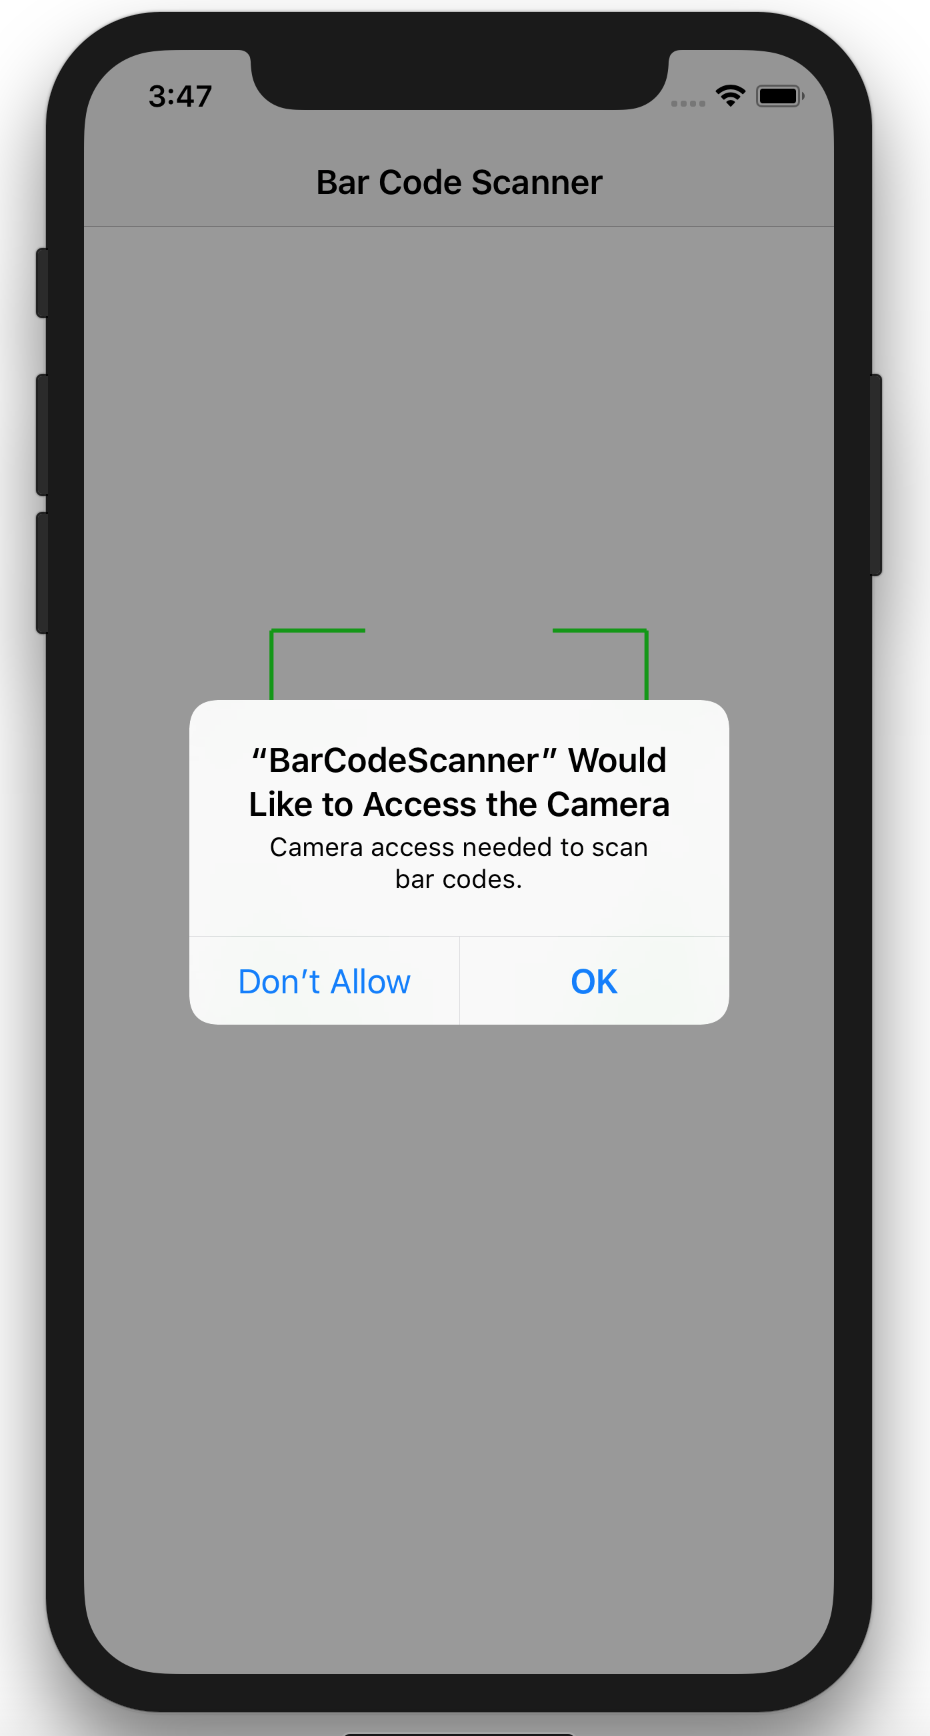 Native Bar Code Scanning in iOS